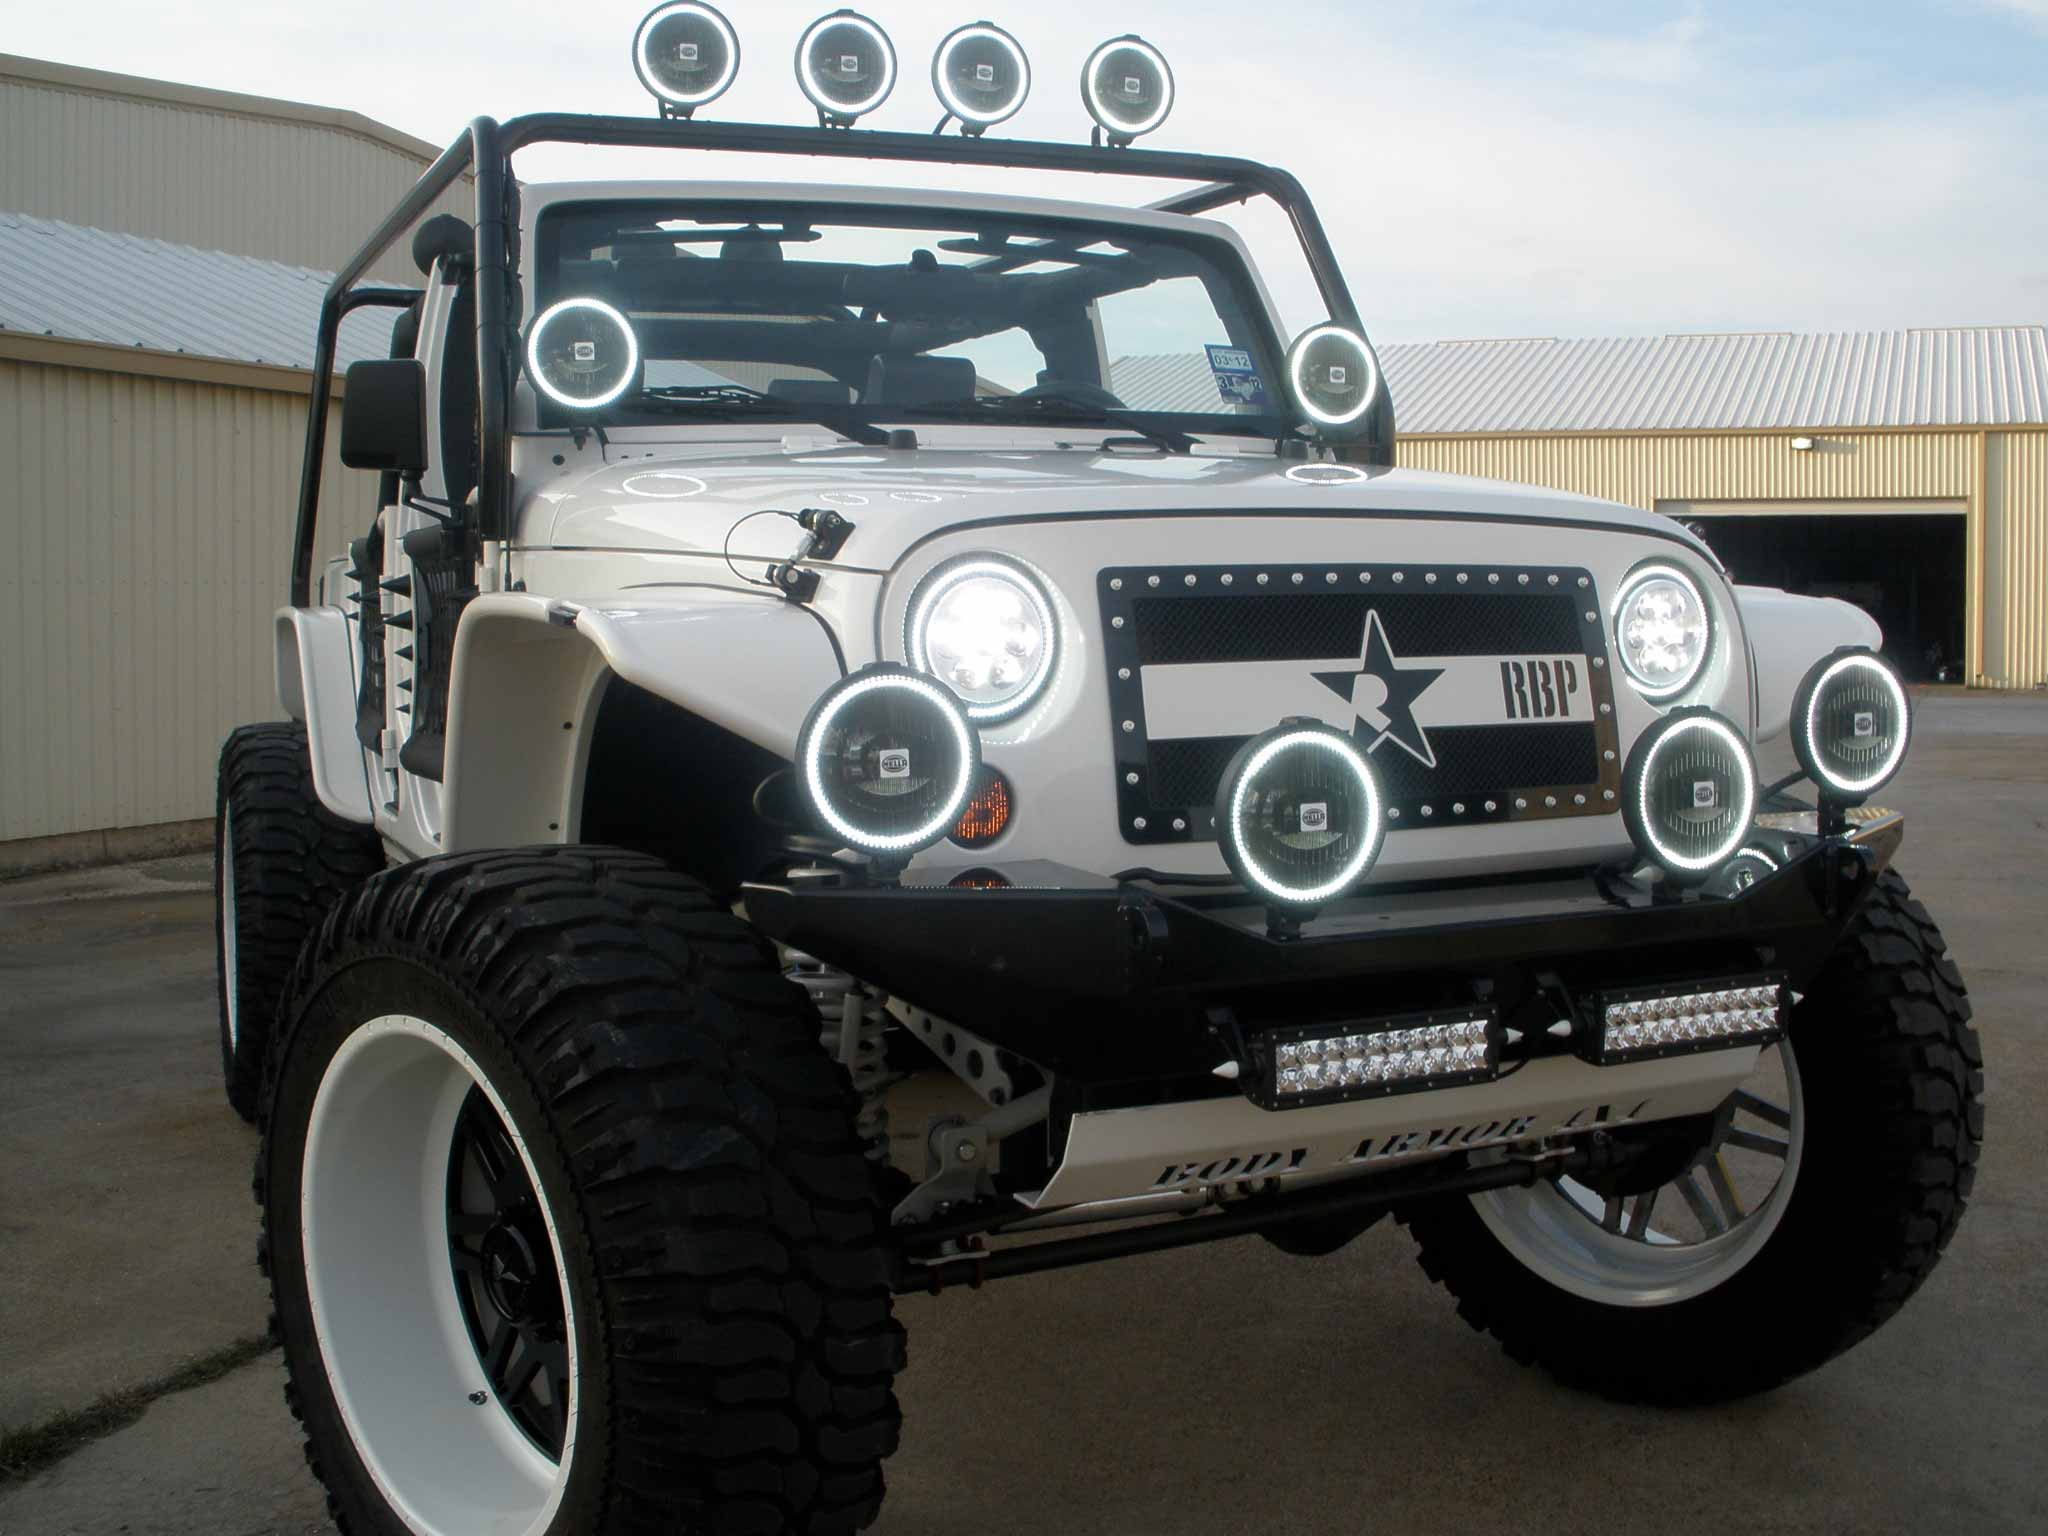 inch wrangler budget lift w jk with spacer ridge shocks suspension kit jeep kits rugged